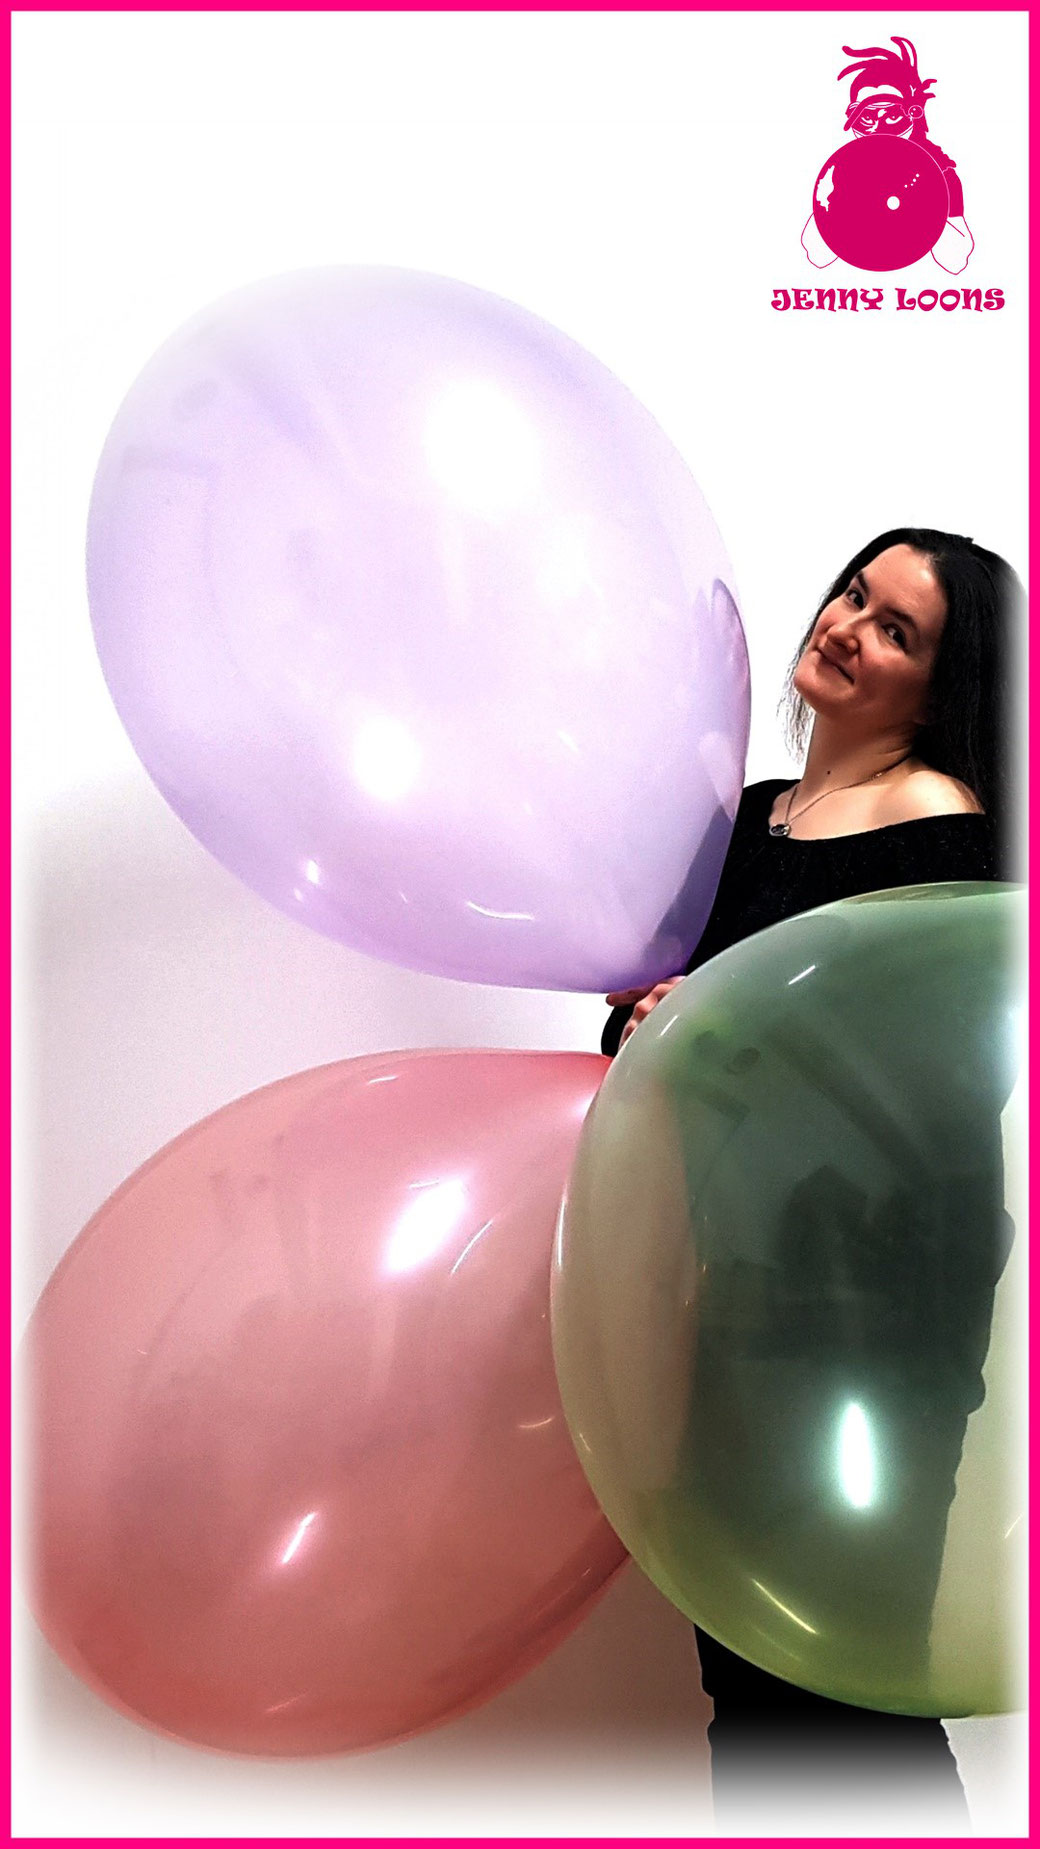 "CATTEX 32"" inch 80cm Riesenballons giant ballon balloon JENNY LOONS Crystal Kristall Exclusive Limited Exklusiv limitiert Looner"